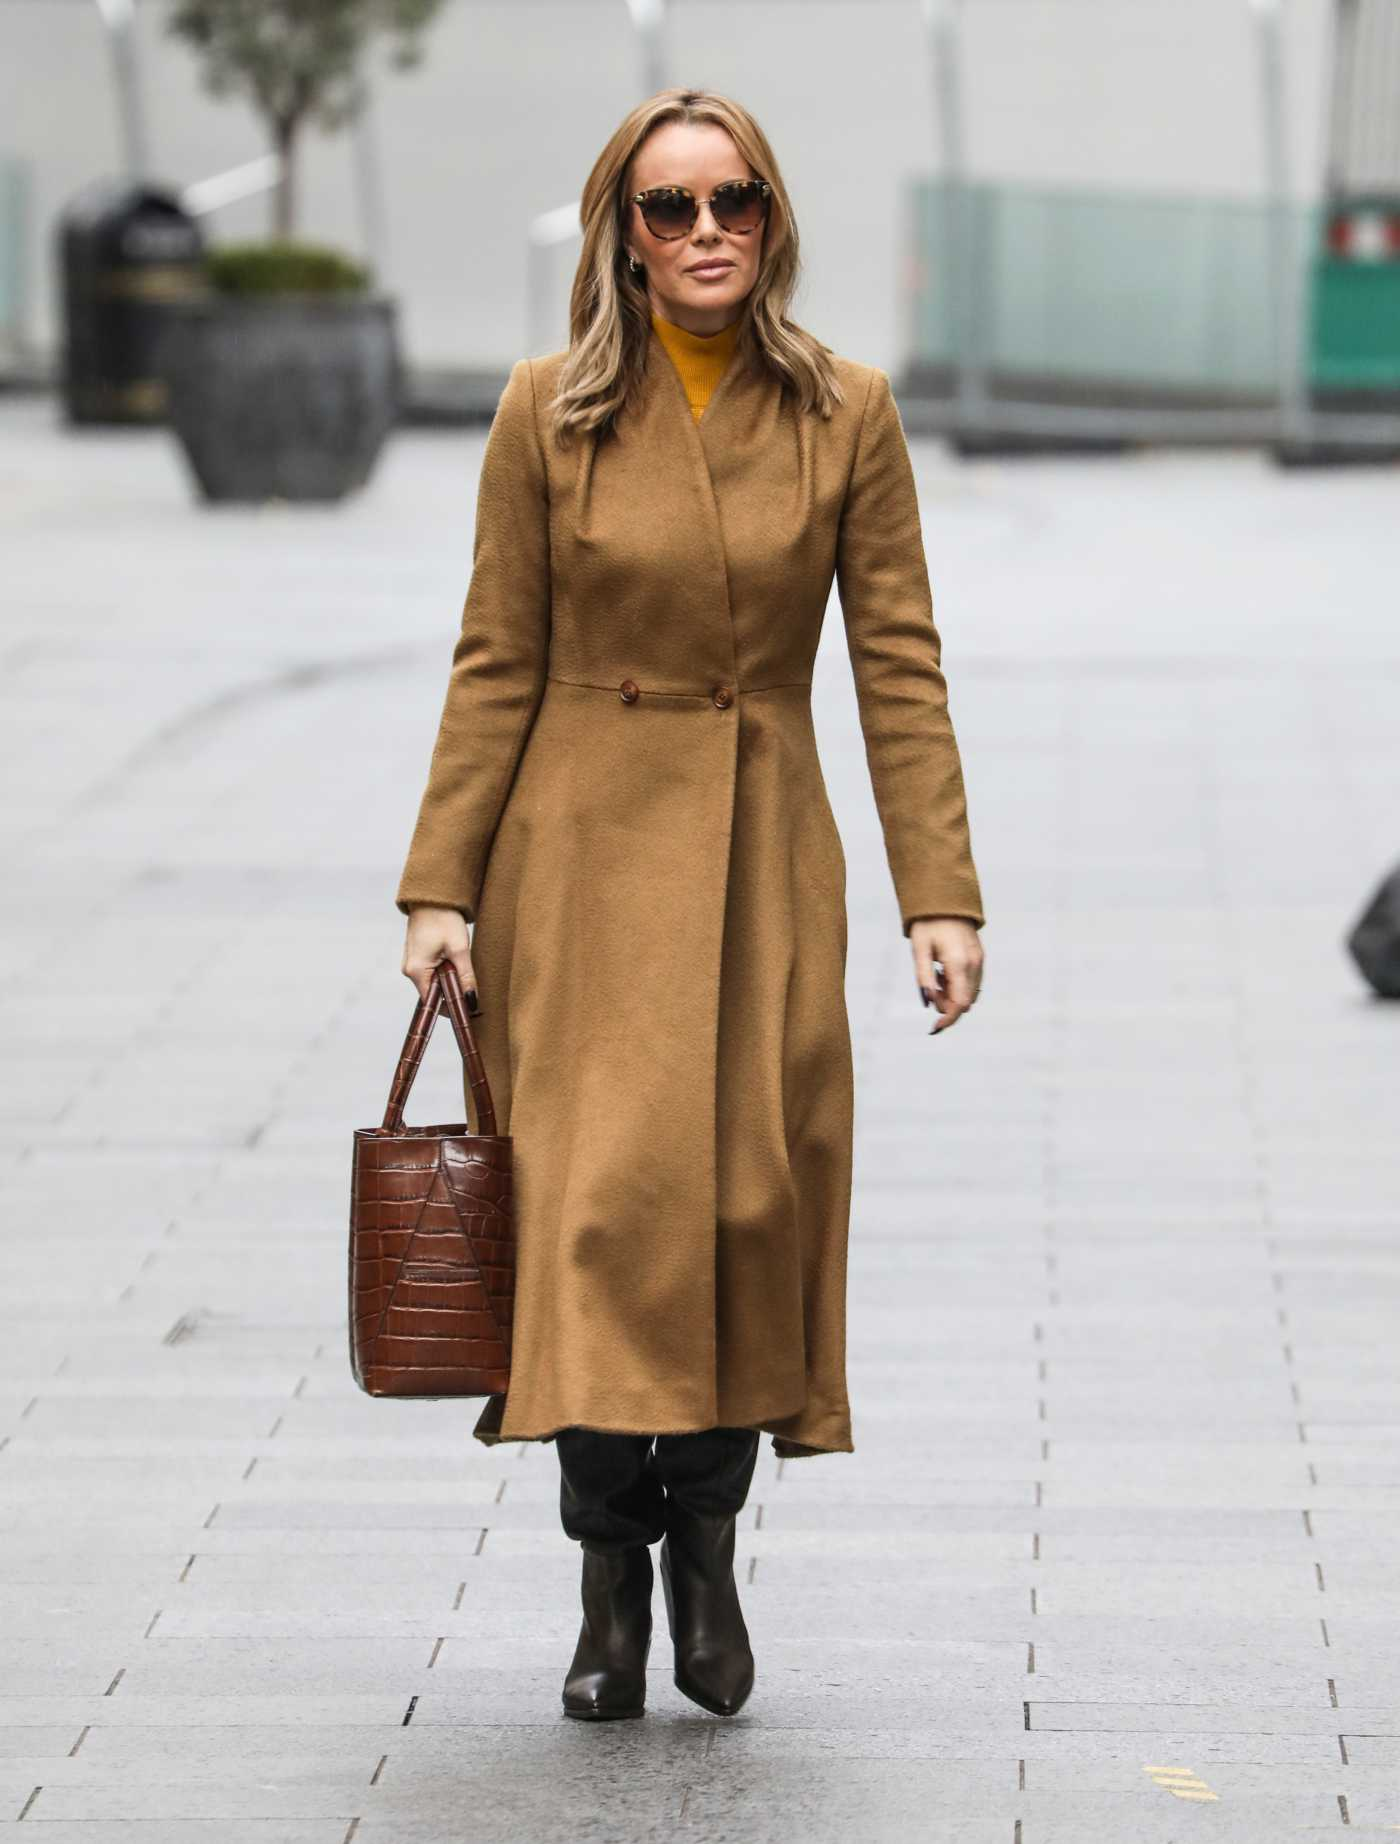 Amanda Holden in a Tan Coat Departs the Global Radio Studios in London 11/19/2020